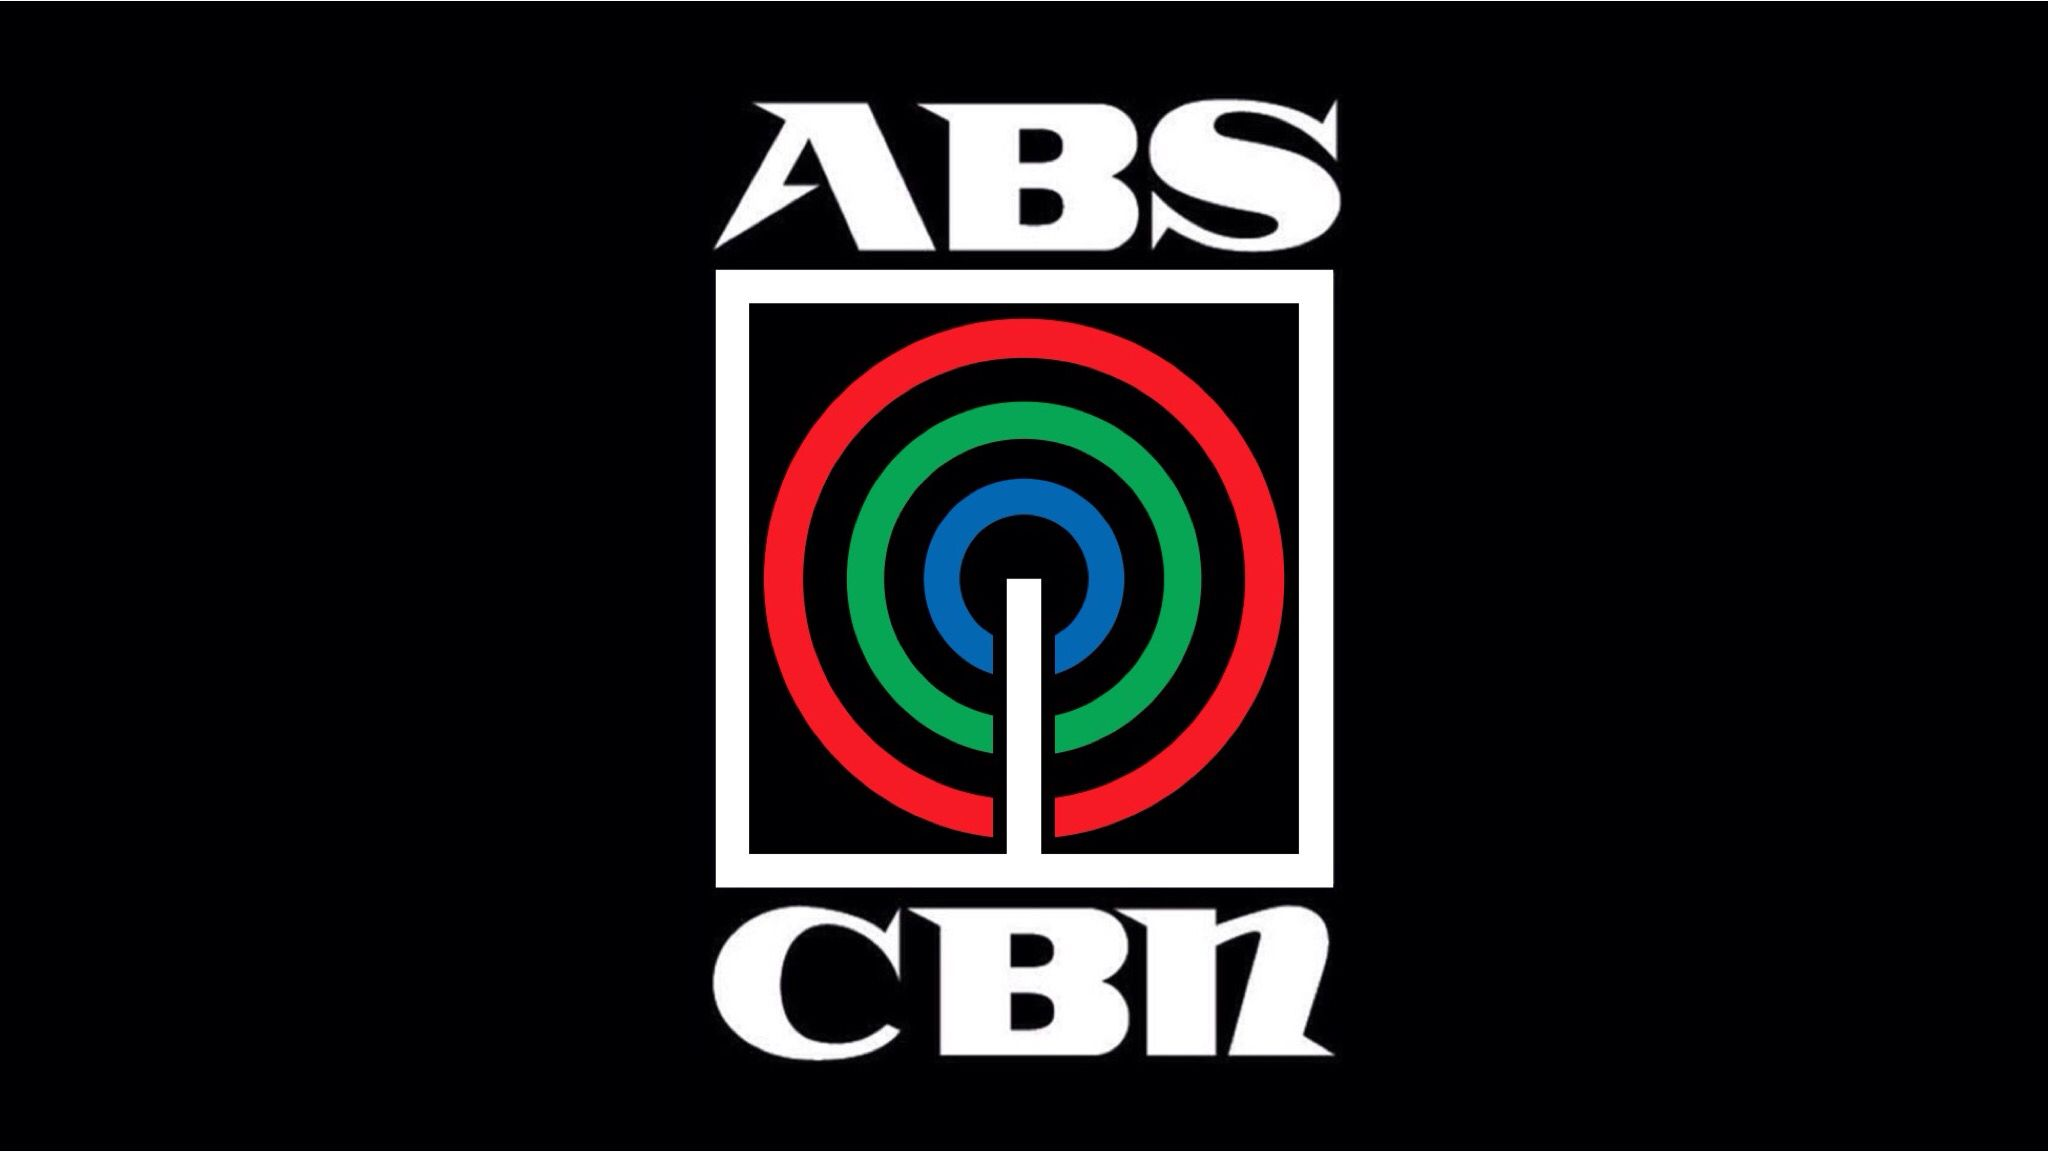 Abs Cbn S Logo 1996 1999 Black And Widescreen 16 9 Version